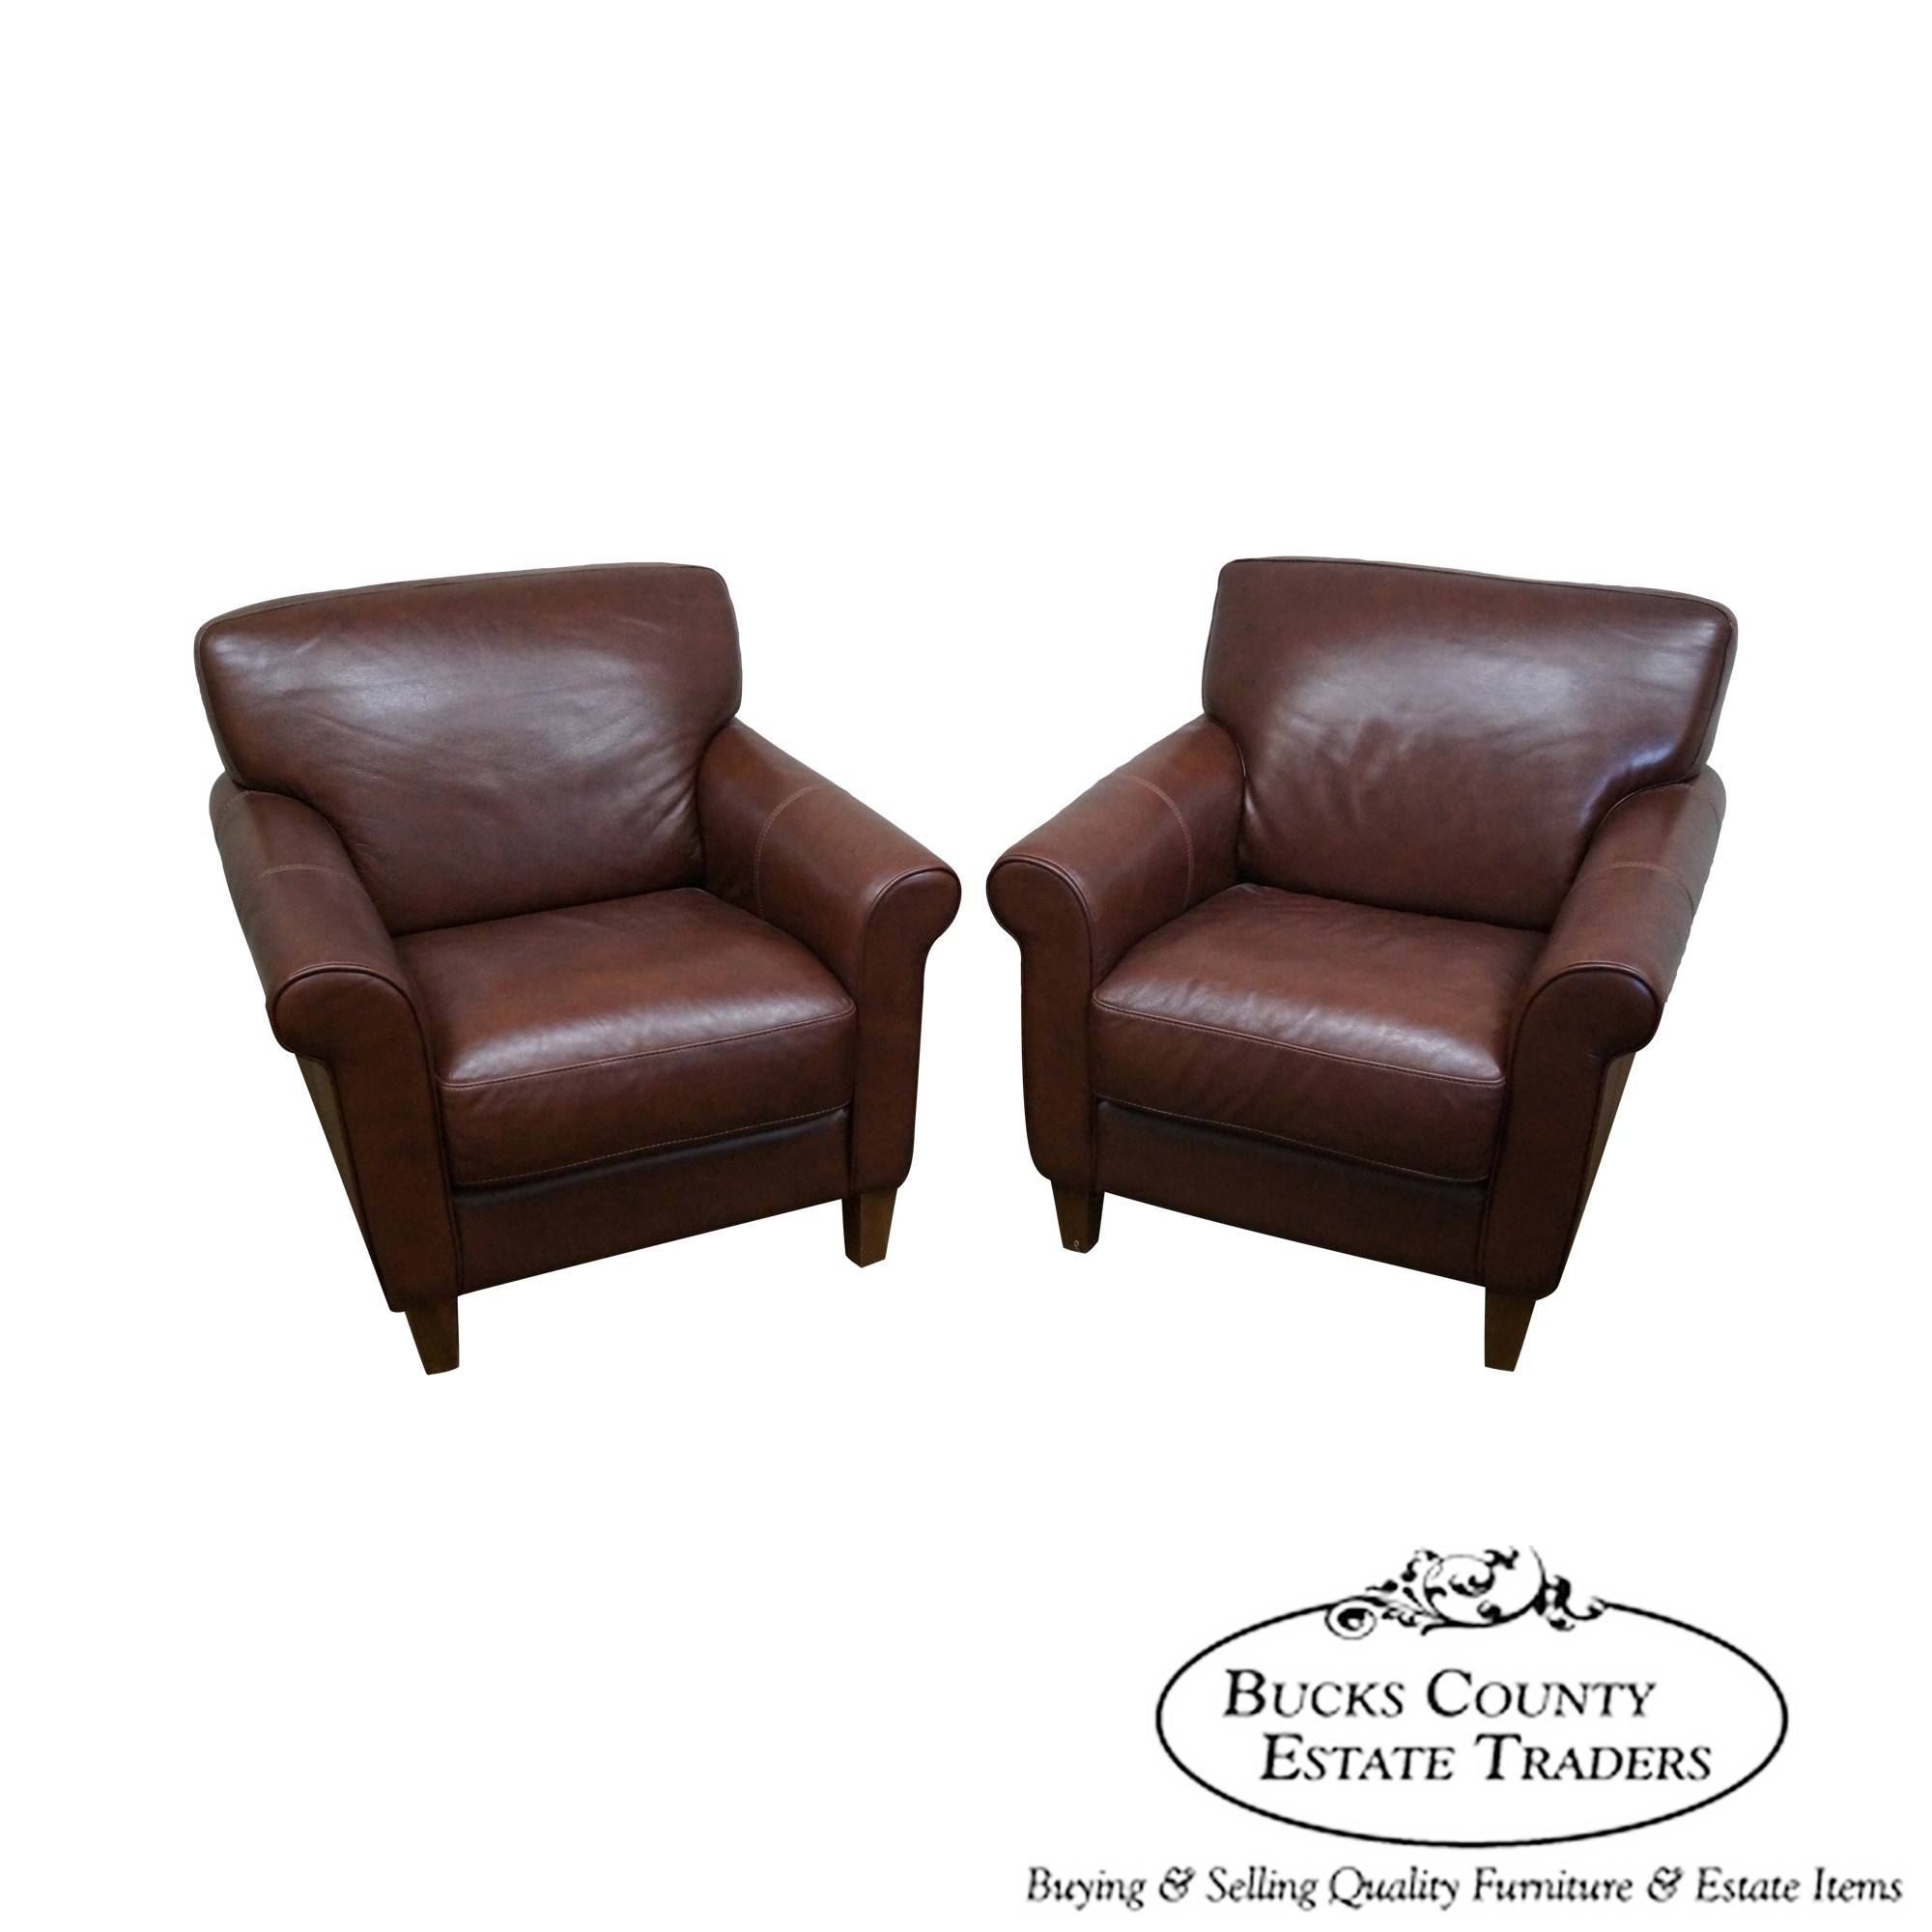 8311 Ax Divani Chateau D' Ax Pair Of Brown Leather Lounge Club with regard to Divani Chateau D'ax Leather Sofas (Image 1 of 15)